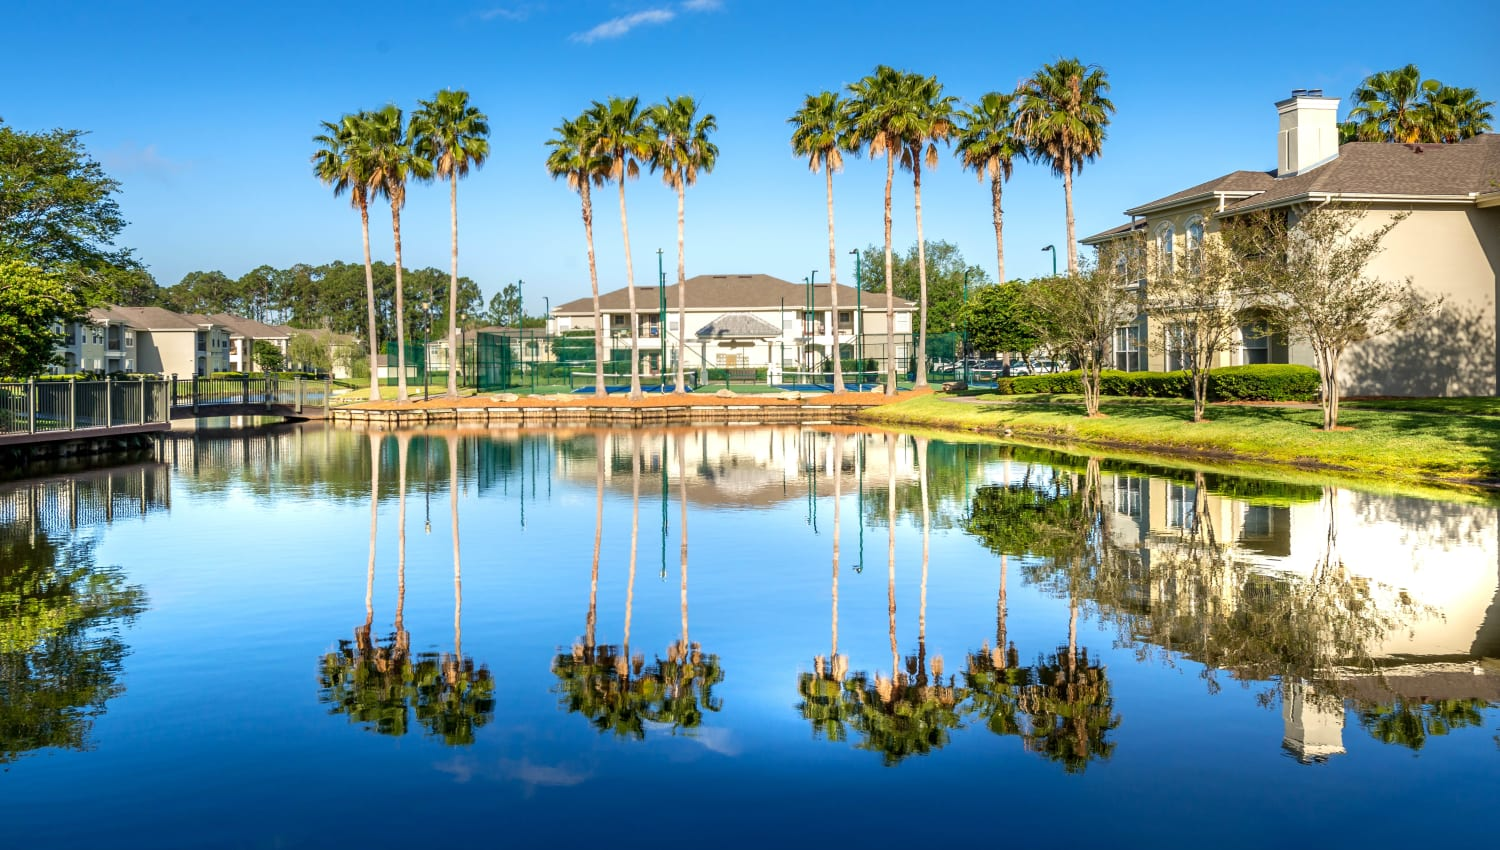 Palm trees mirrored across the serene onsite lake at Cape House in Jacksonville, Florida